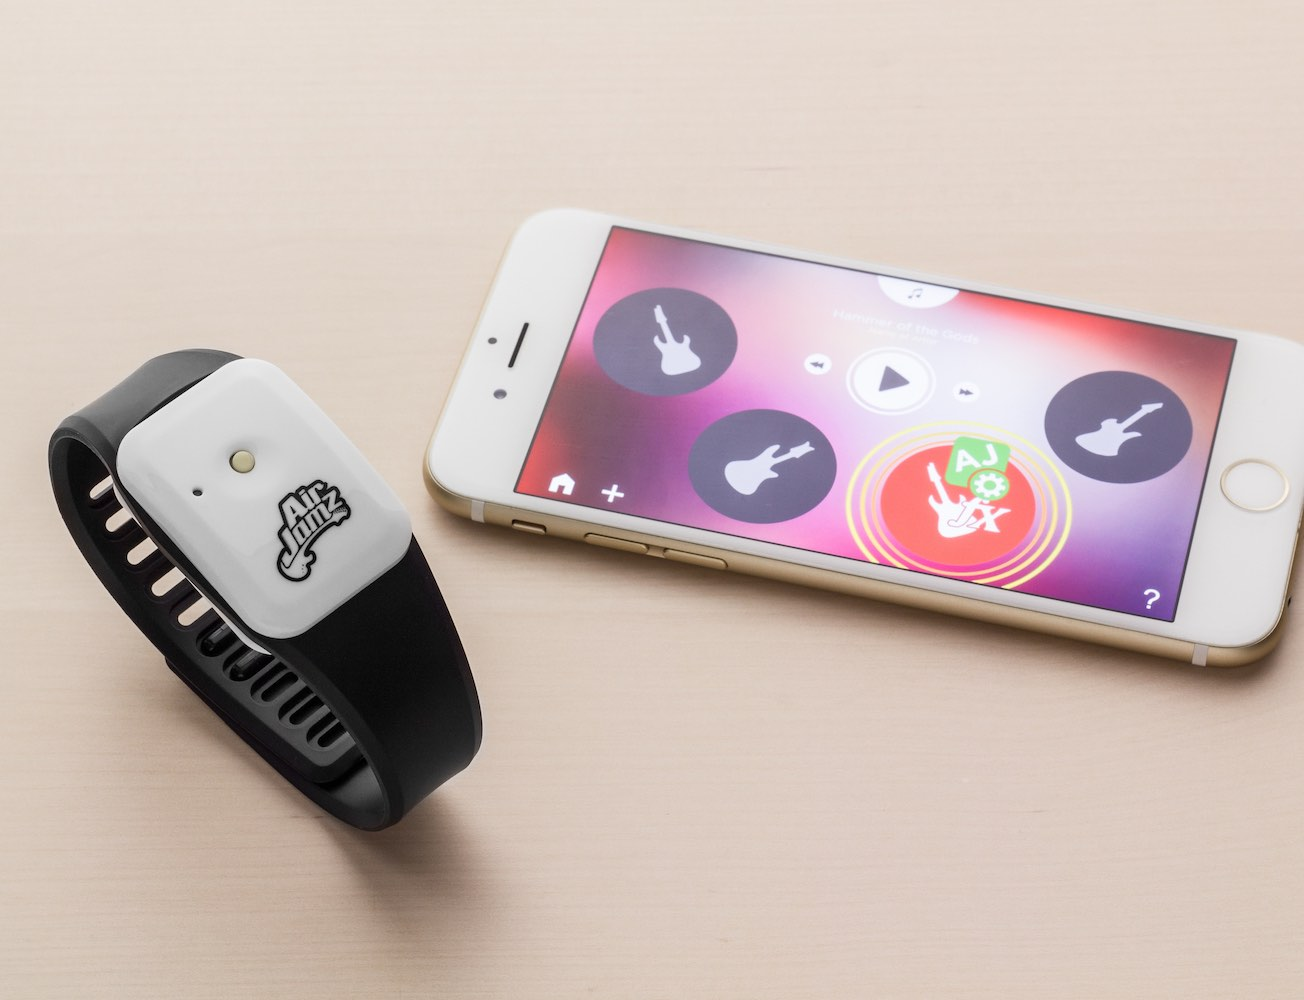 AirJamz – Wearable Air Guitar